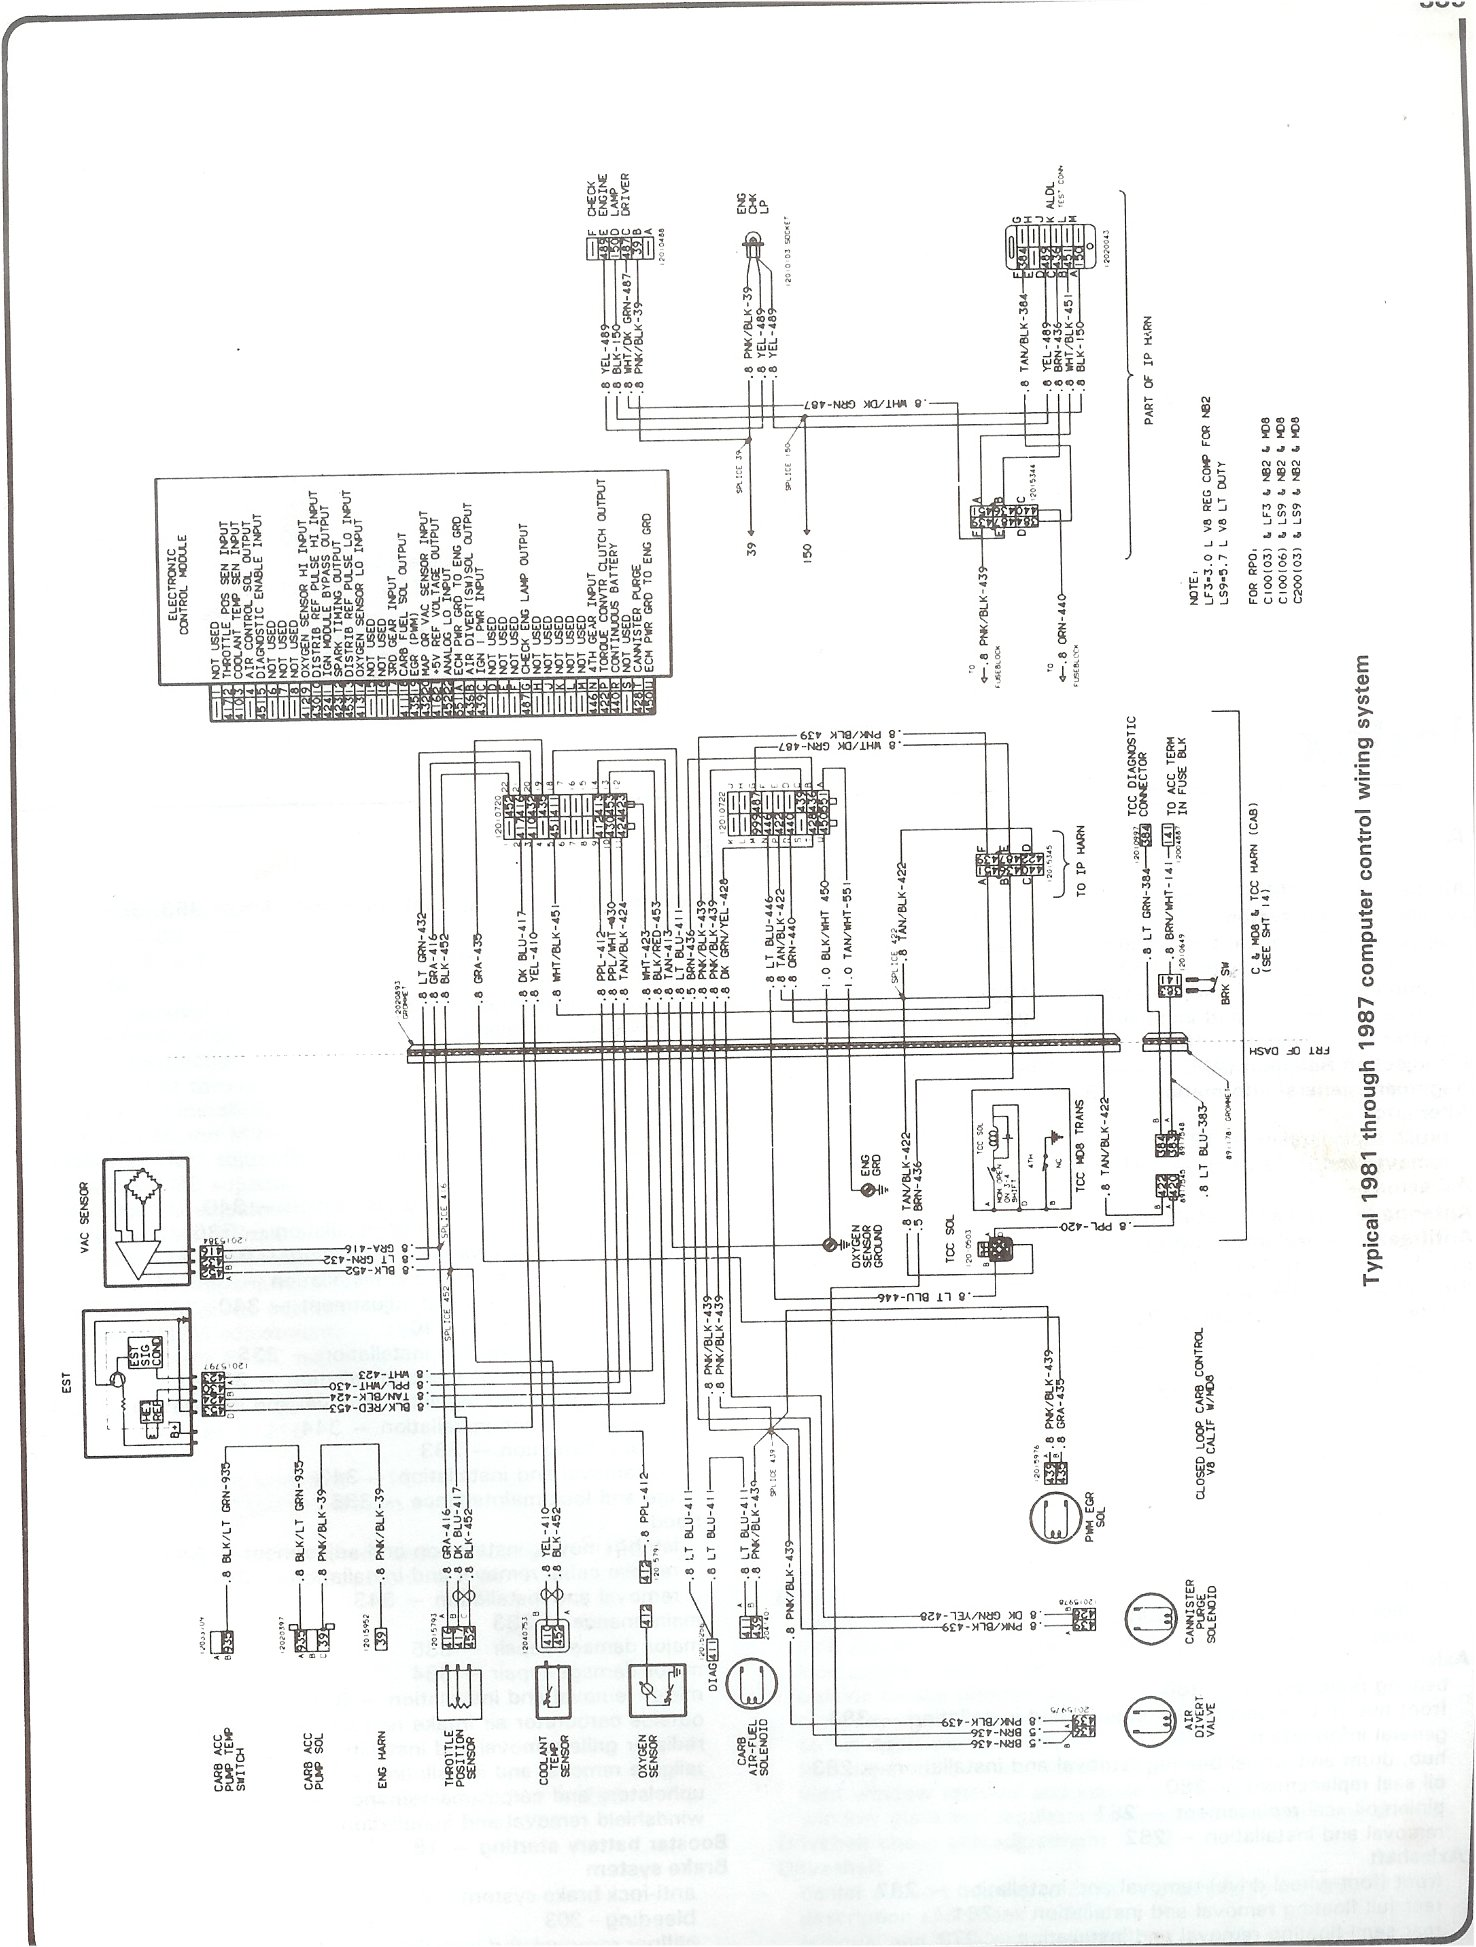 1984 Chevy K10 Wiring Diagram Third Level 1970 Gm Radio Complete 73 87 Diagrams Suburban Fuse Box